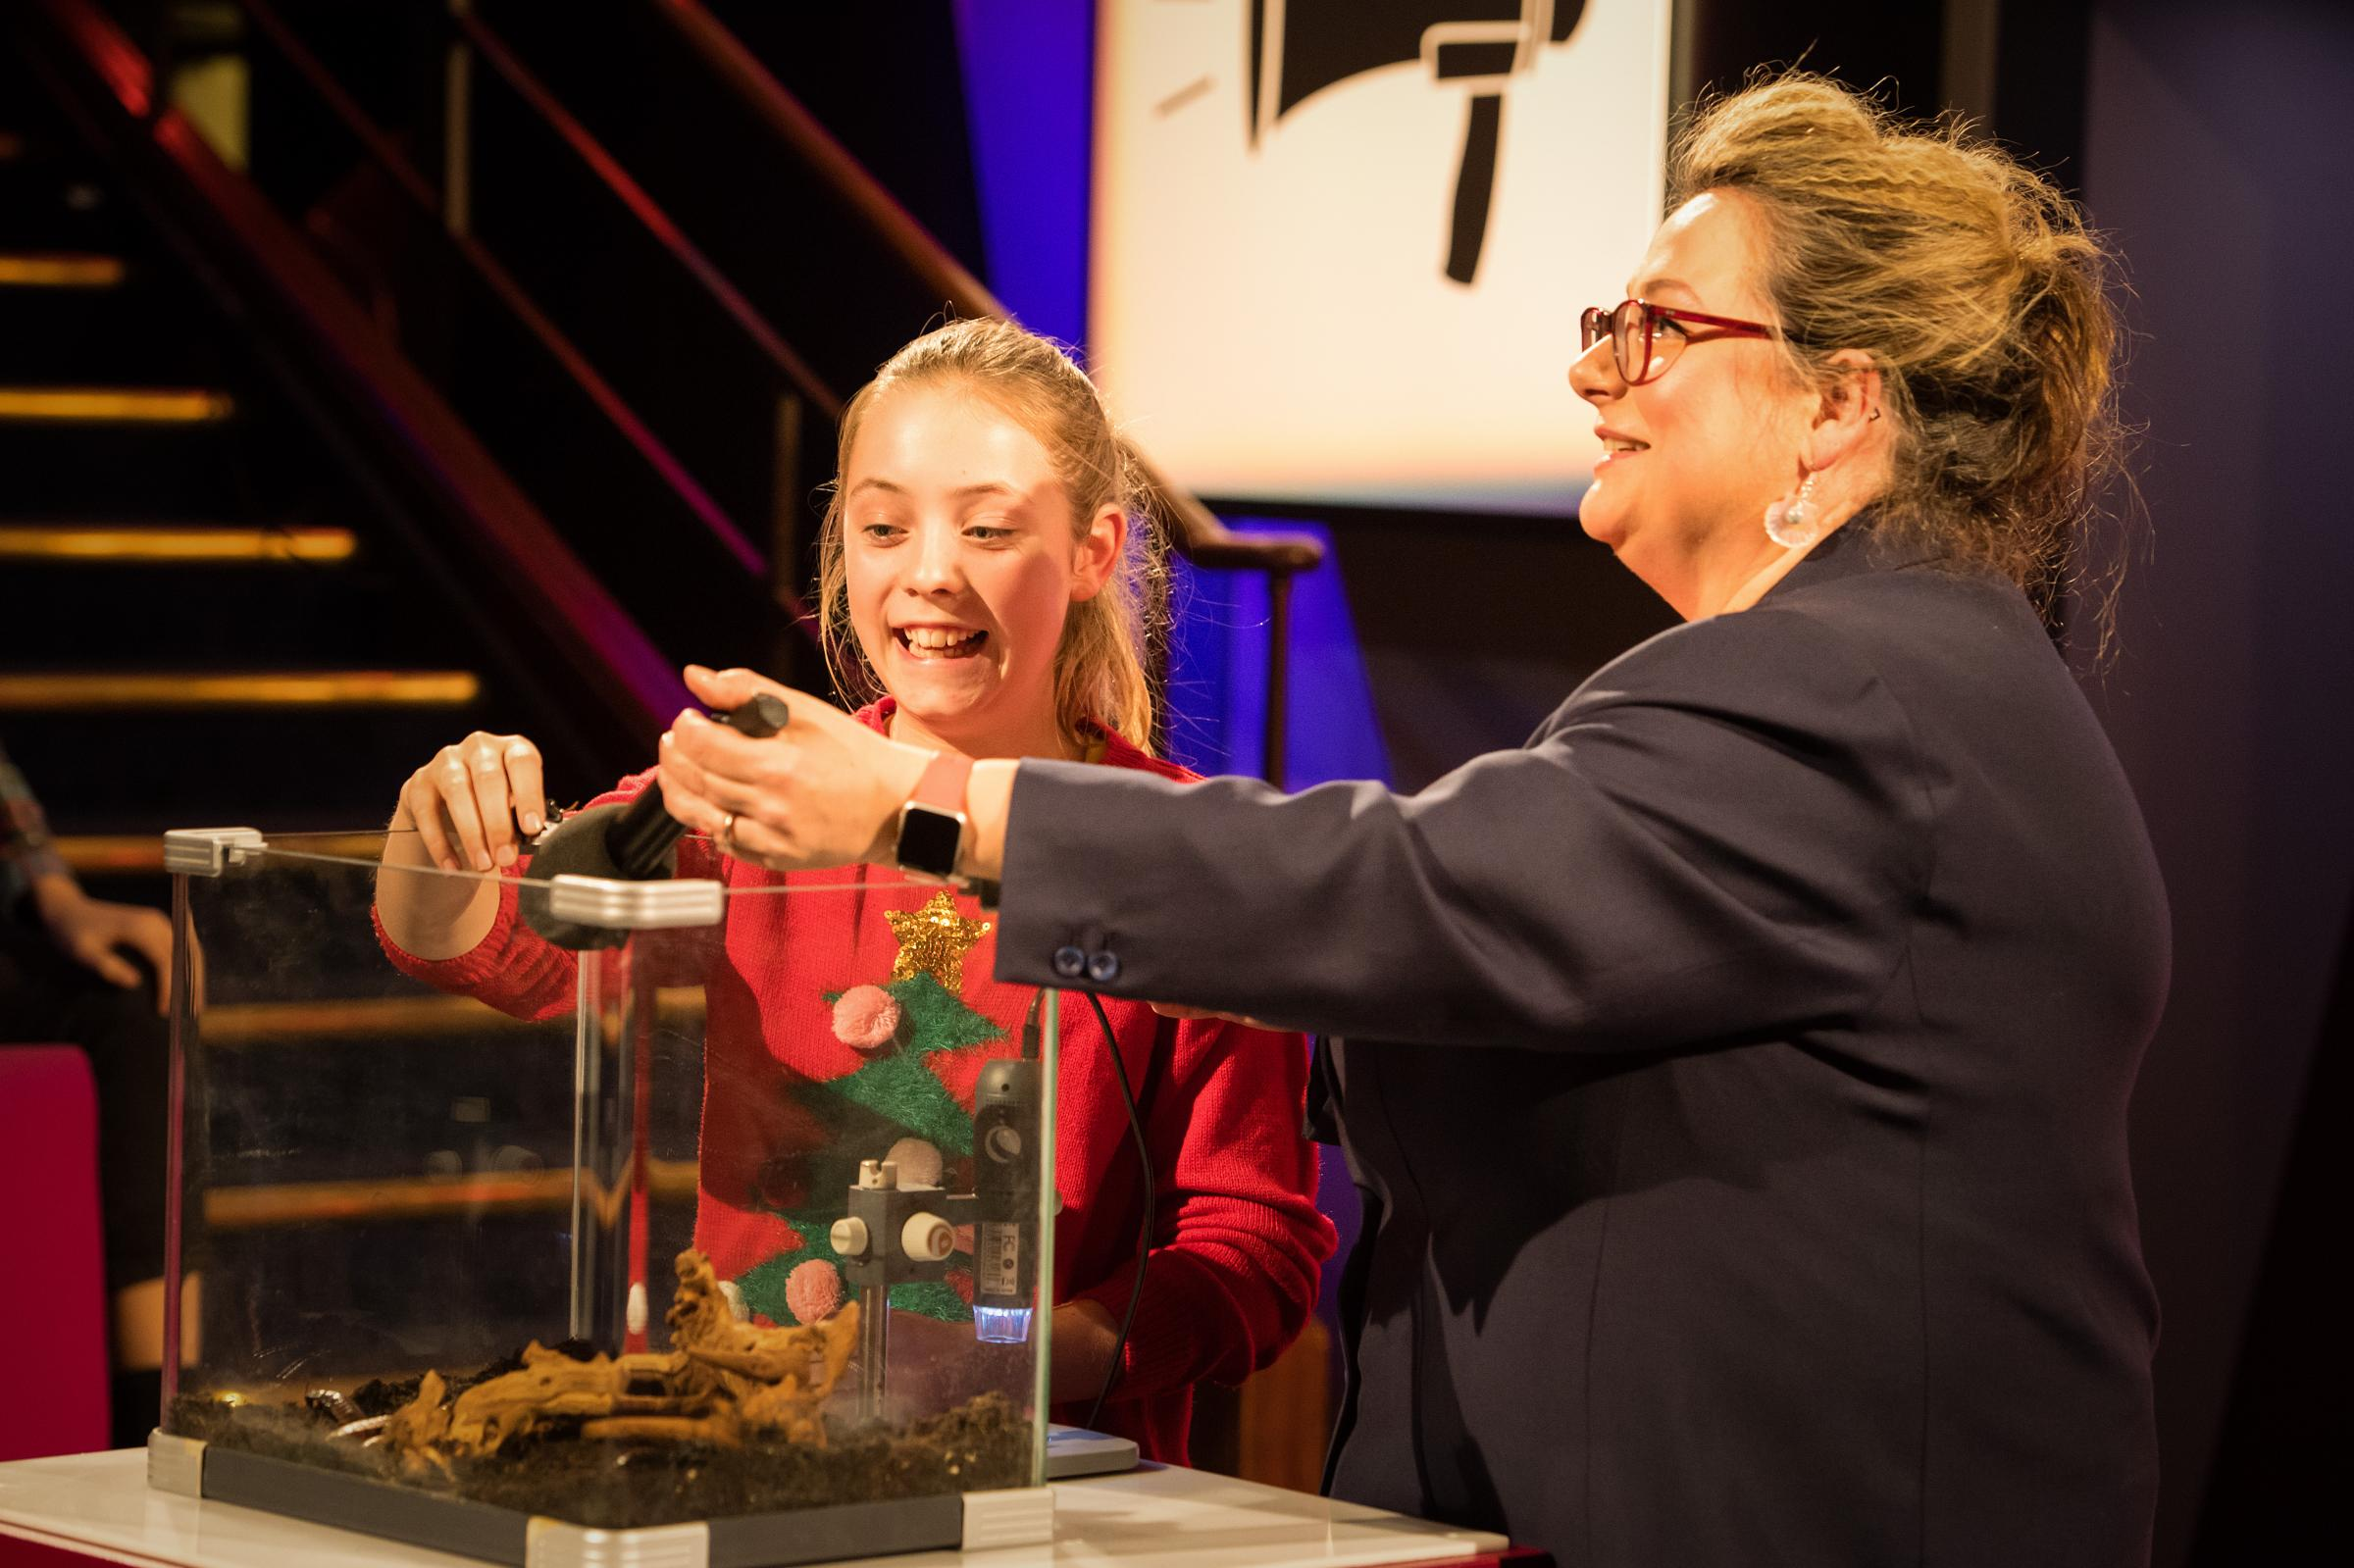 Orla had no issue handling cockroaches in her Christmas Lectures demo